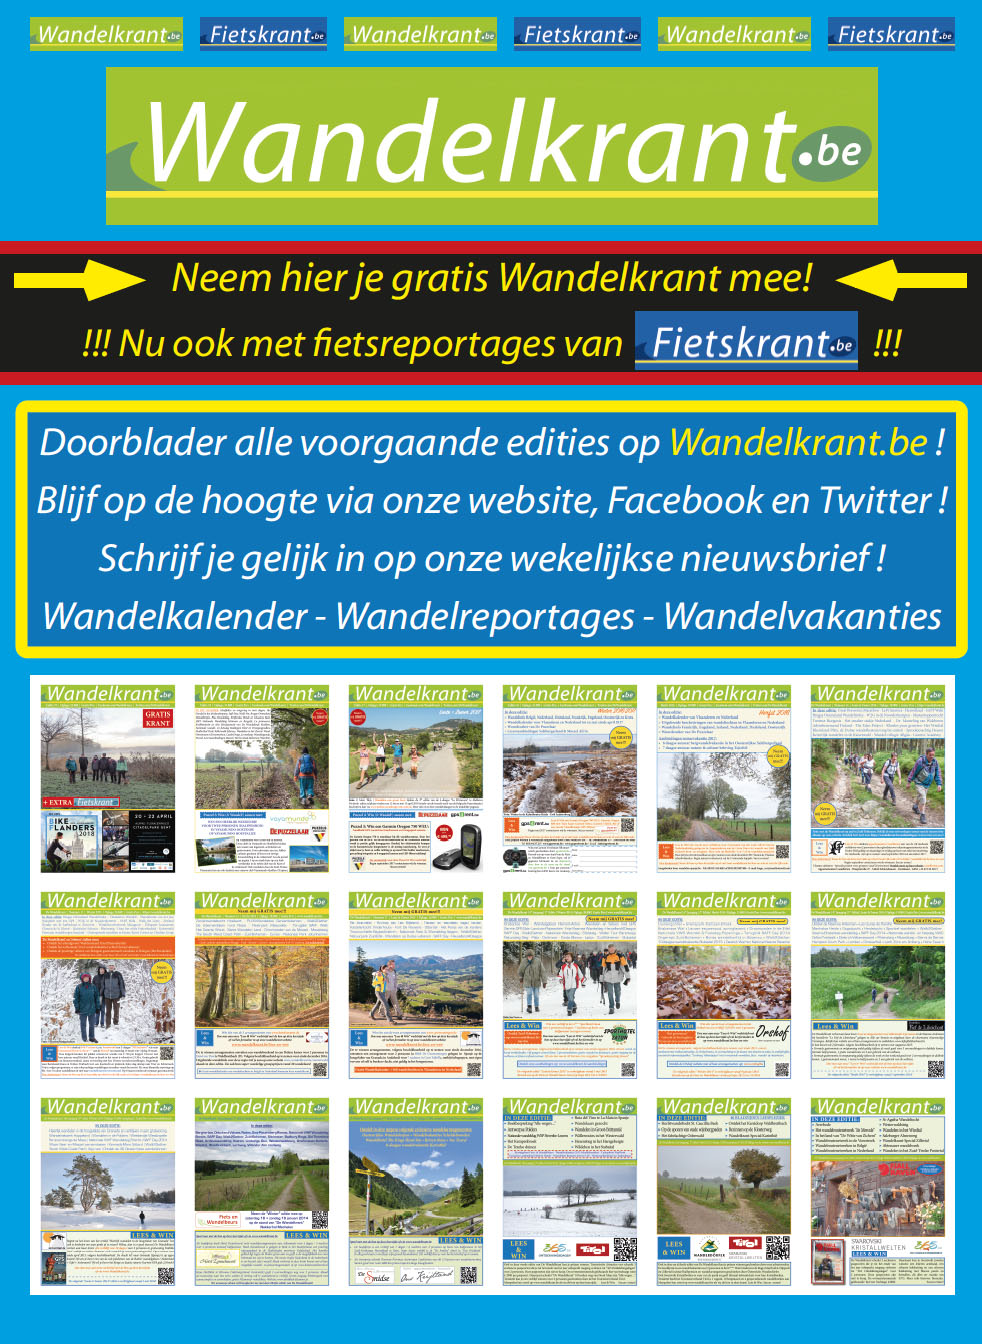 Rollup-banner-stand-wandelkrant